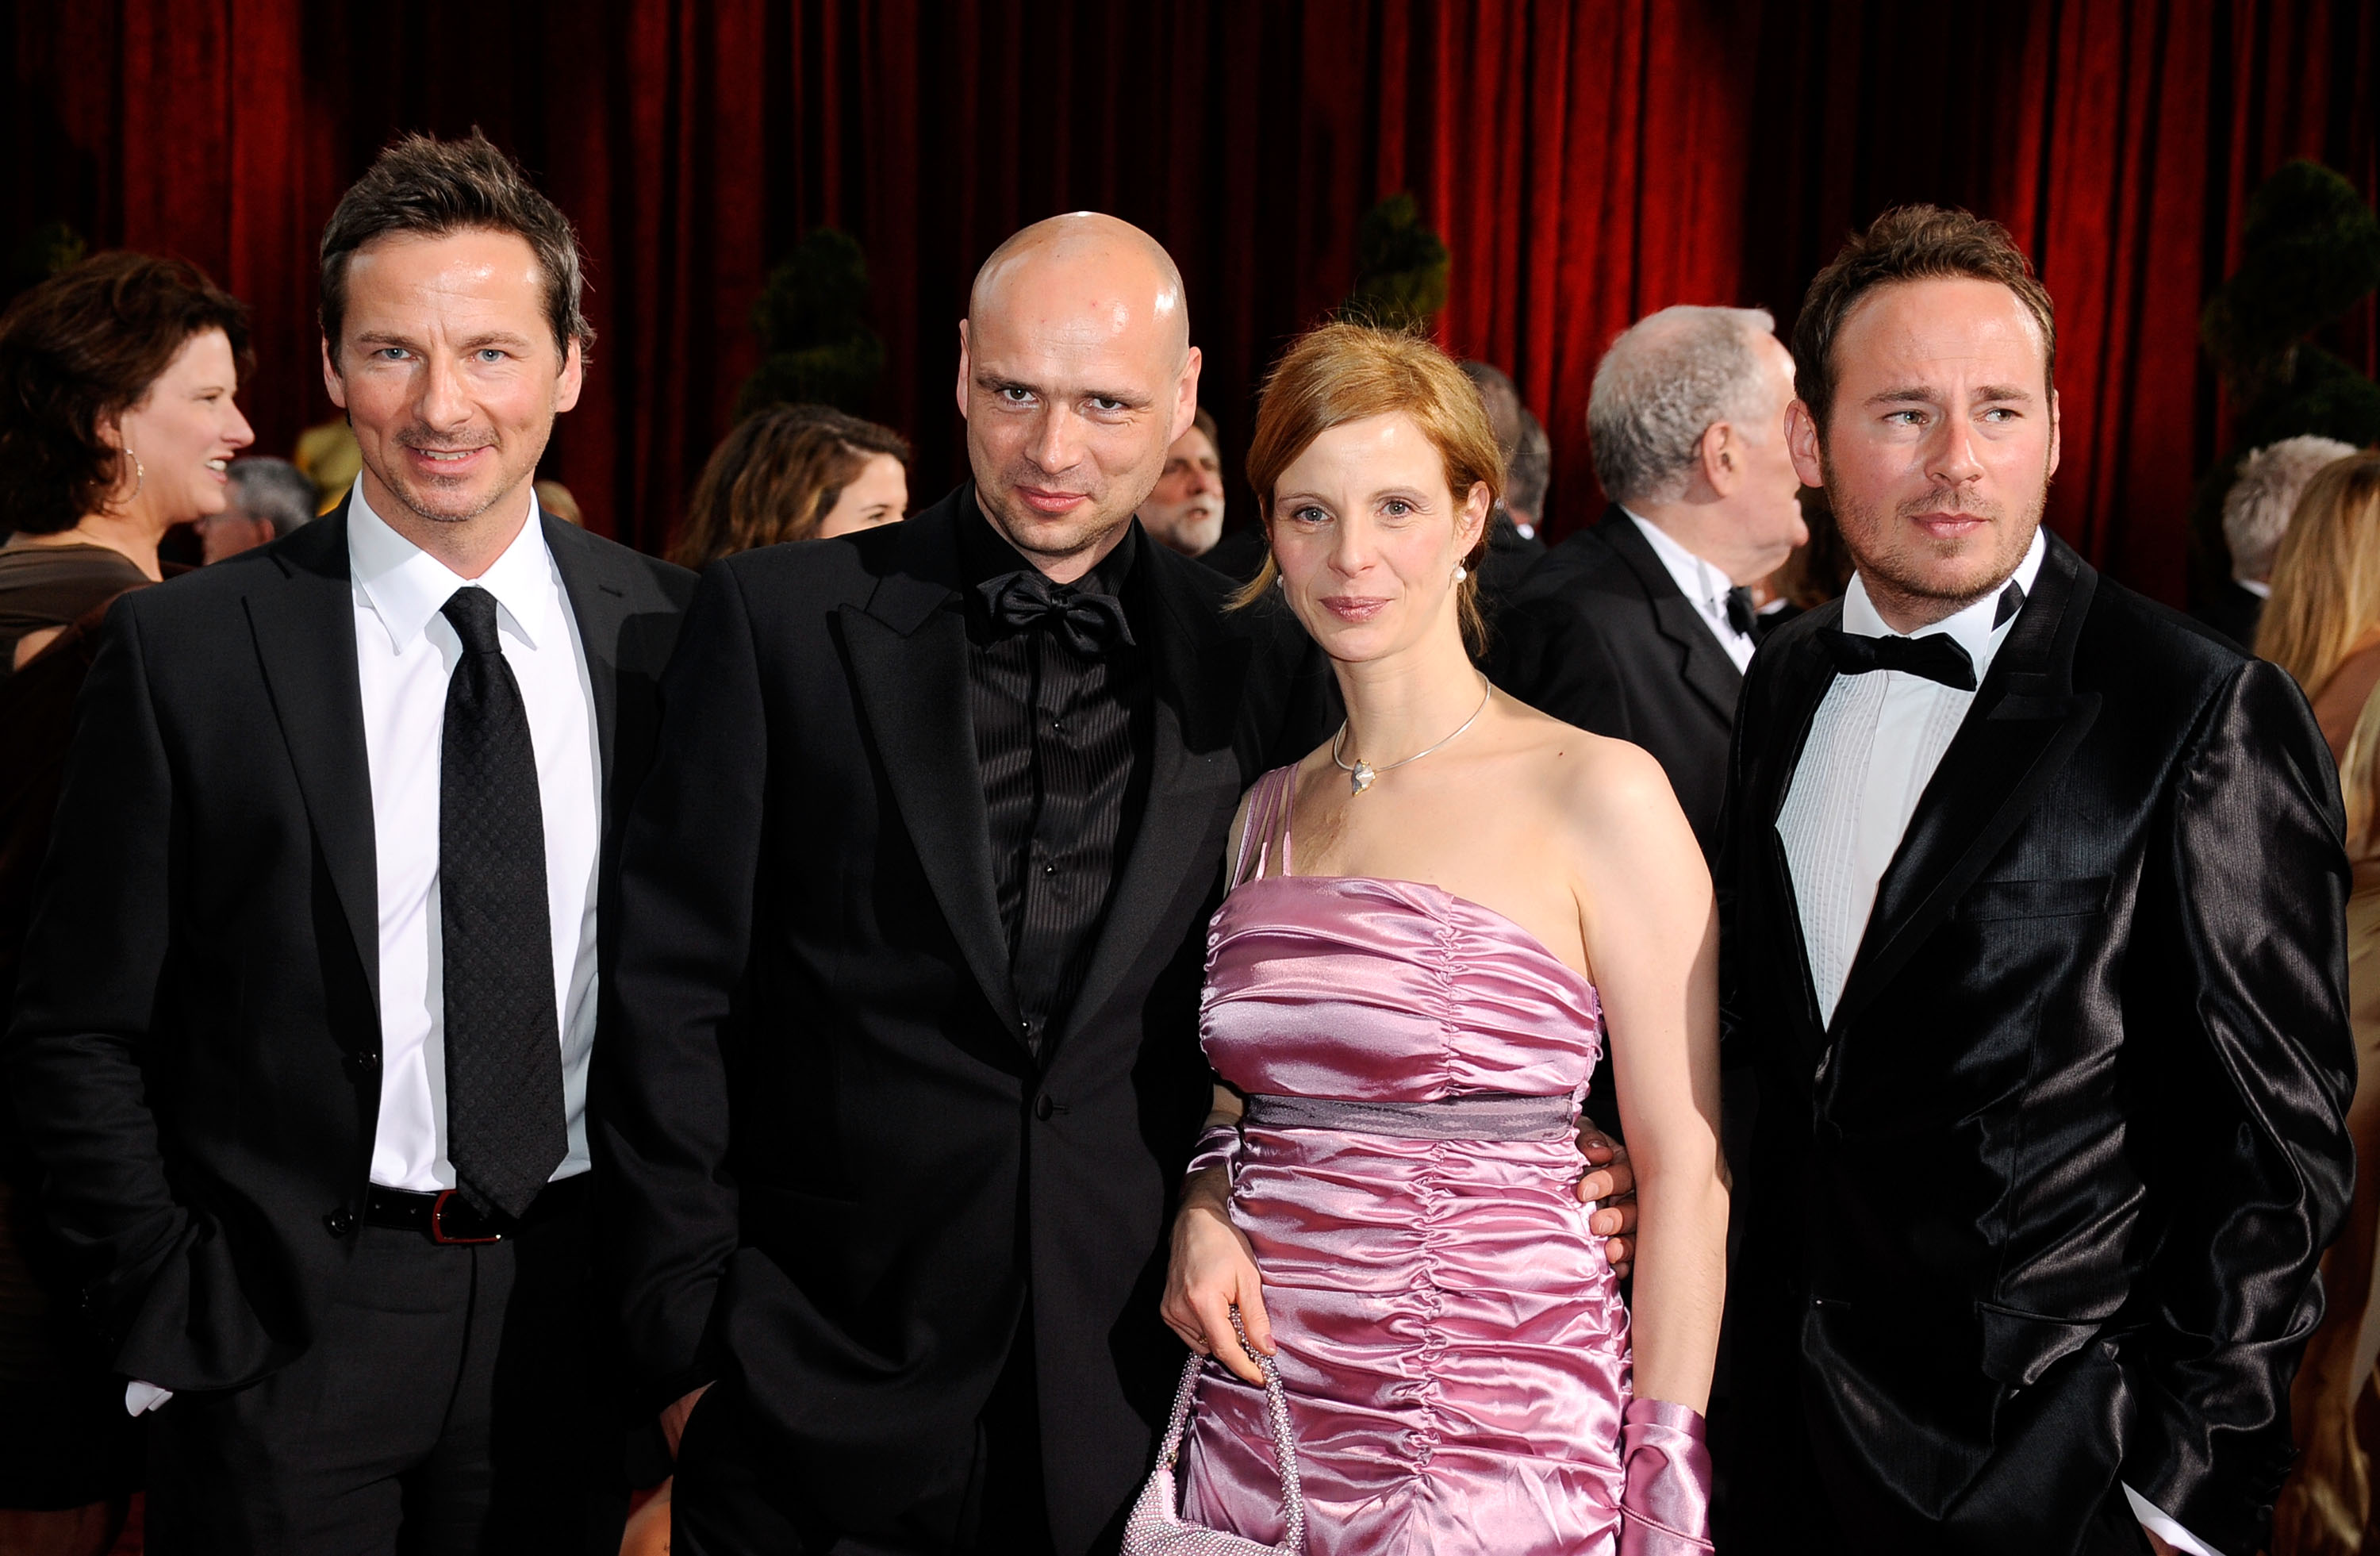 LOS ANGELES, CA - FEBRUARY 22: (L-R) Actor and producer DAVID BUNNERS, Filmmaker JOCHEN FREYDANK, actress JULIA JAEGER and screenwriter JOHANN BUNNERS arrive at the 81st Annual Academy Awards held at Kodak Theatre on February 22, 2009